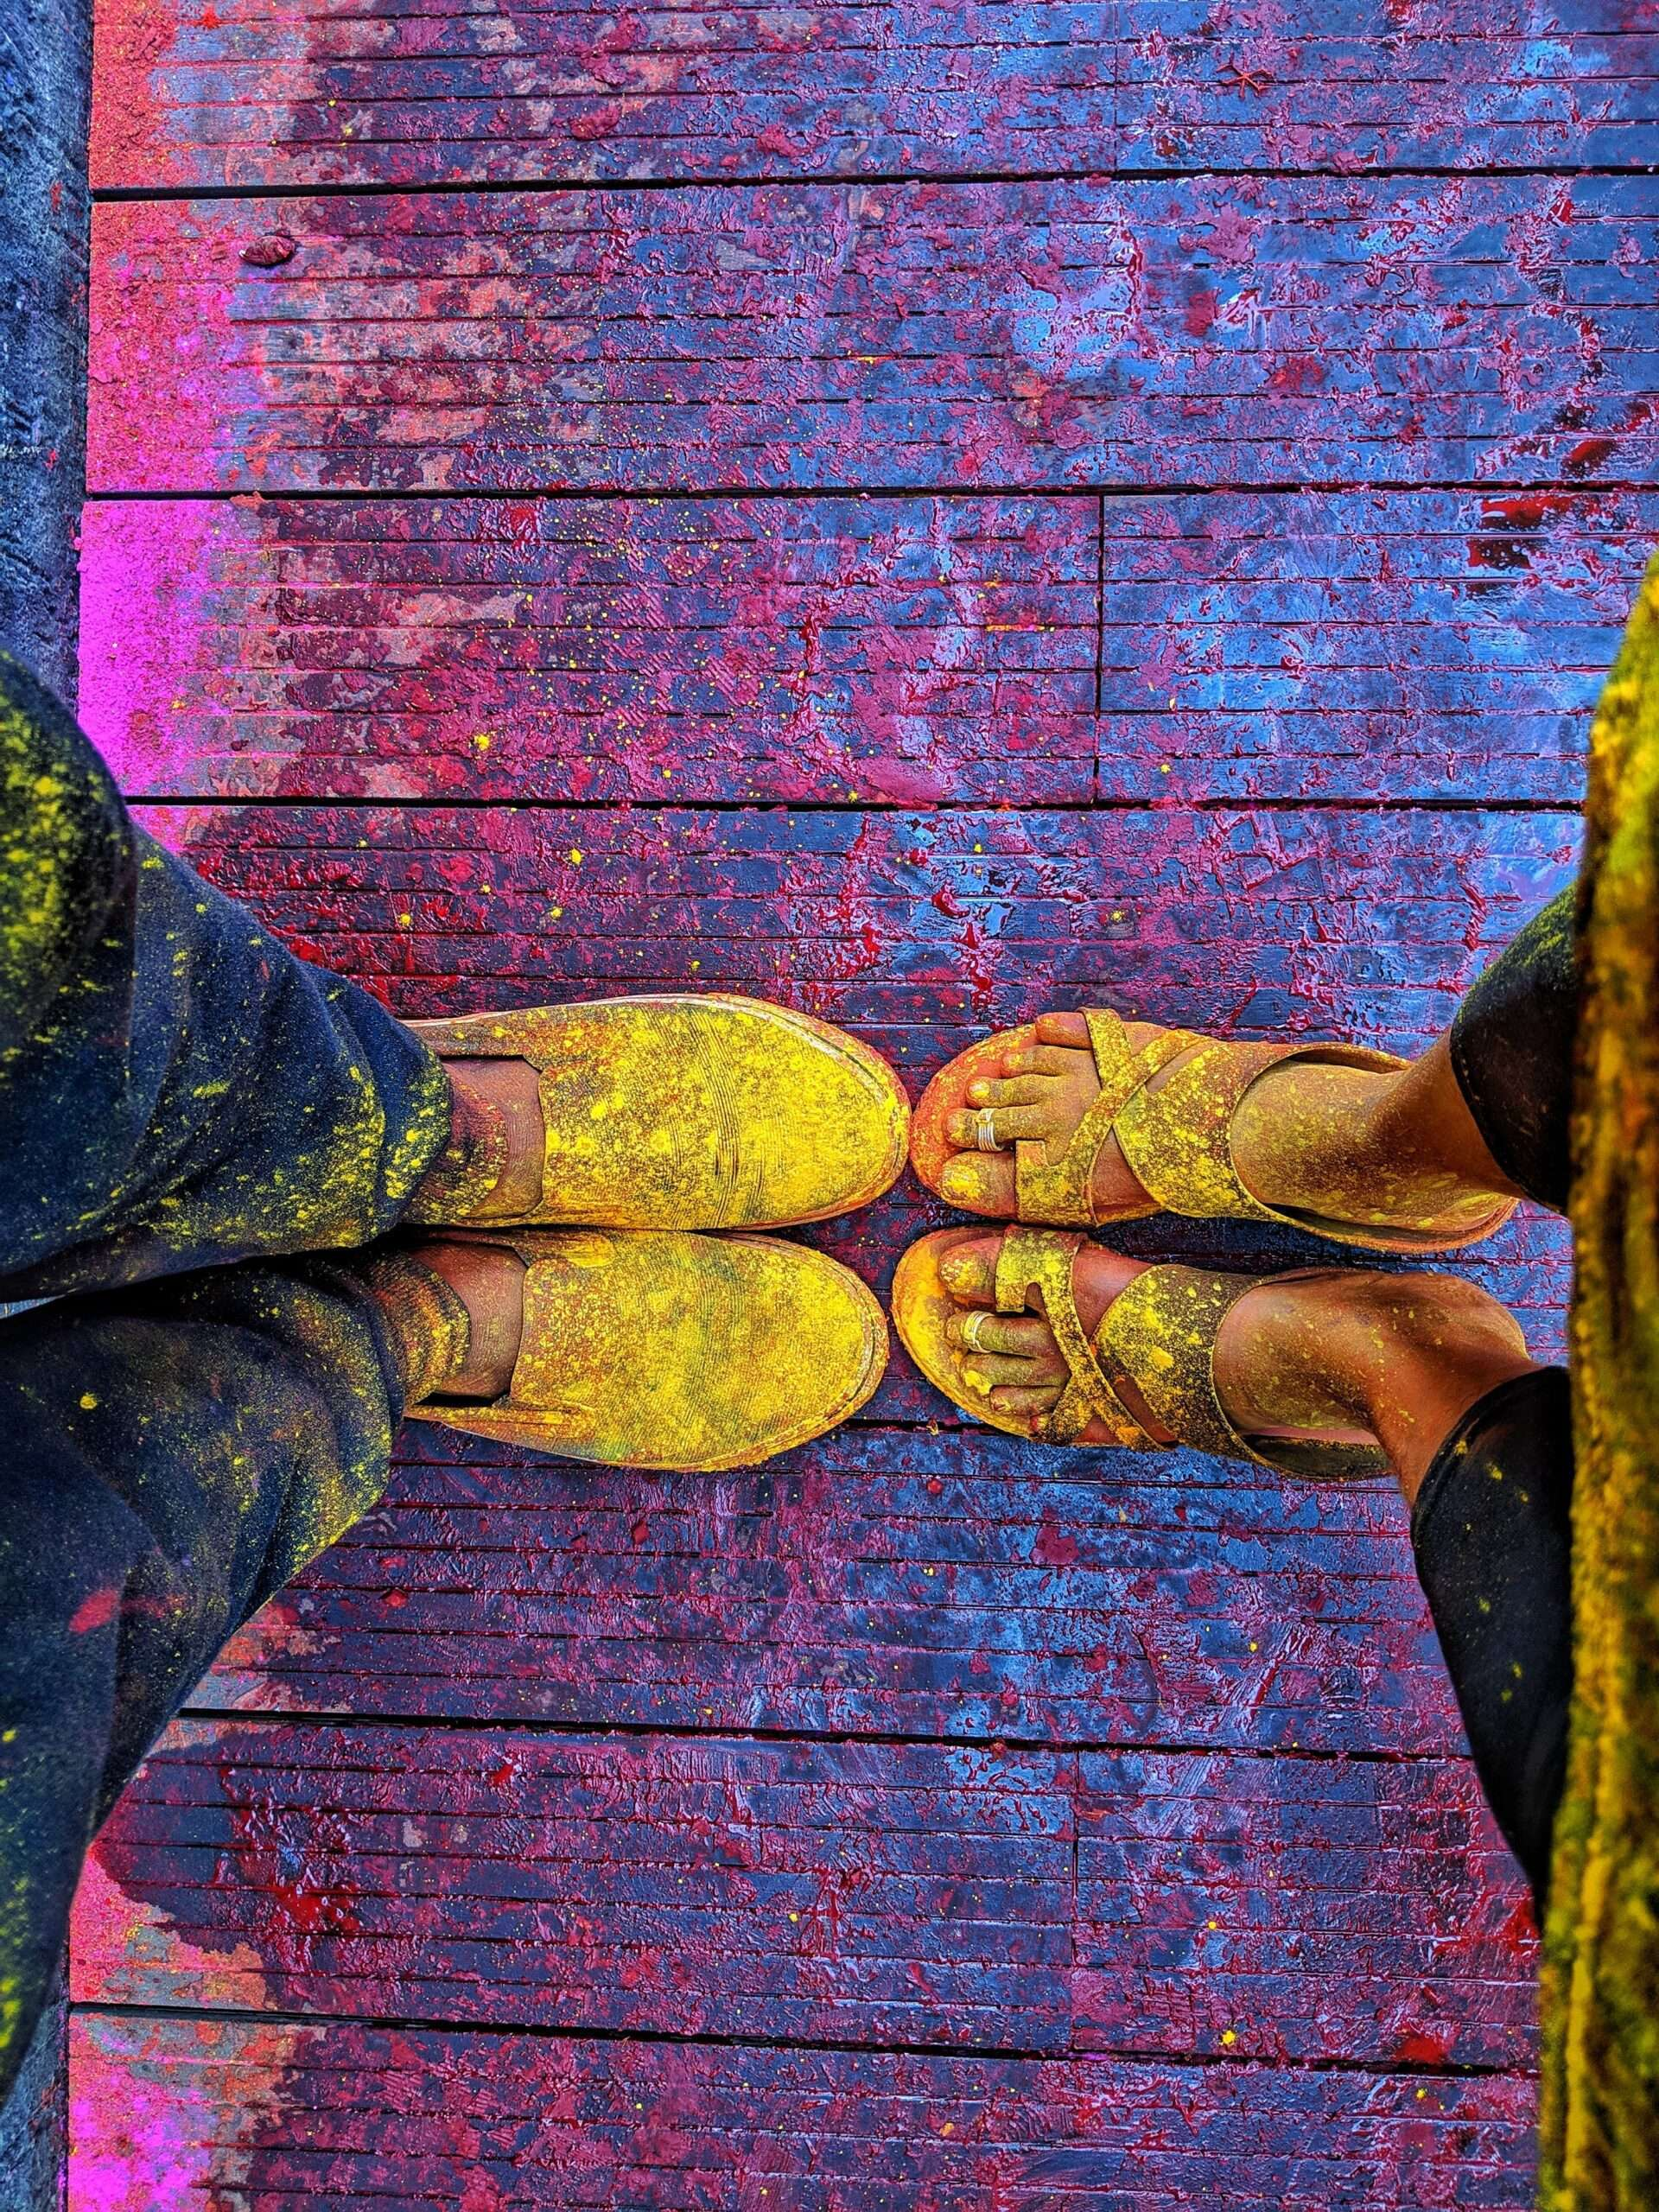 Two peoples clothing and feet covered in yellow powder at Holi festival